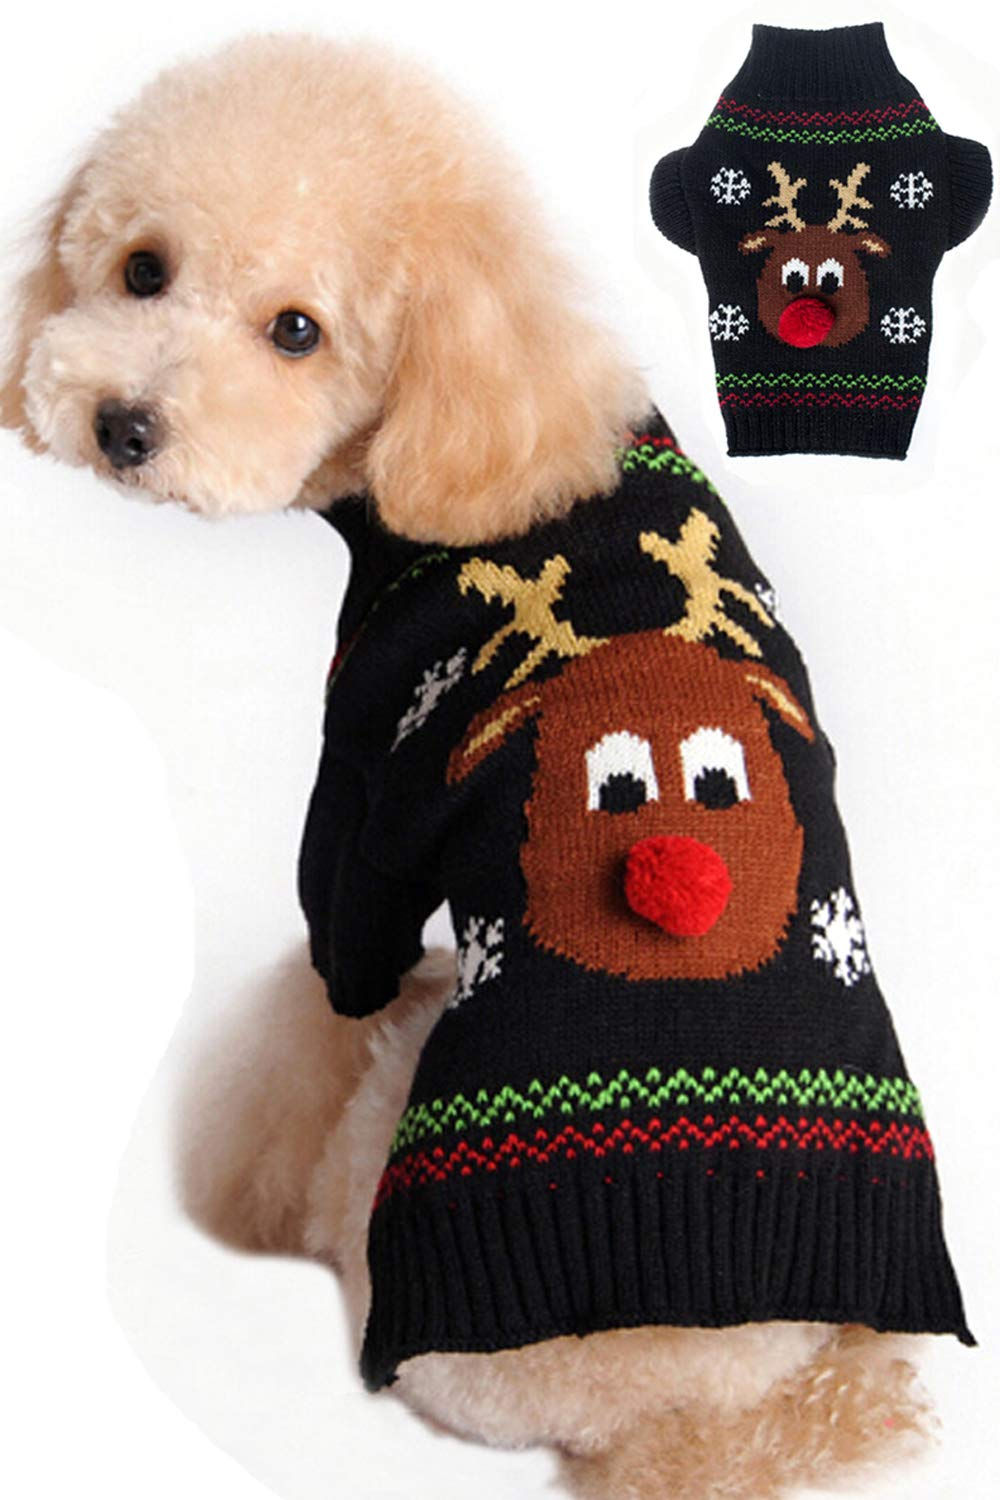 BOBIBI Dog Sweater for Christmas Cartoon Reindeer Pet Cat Winter Knitwear Warm Clothes Medium by BOBIBI